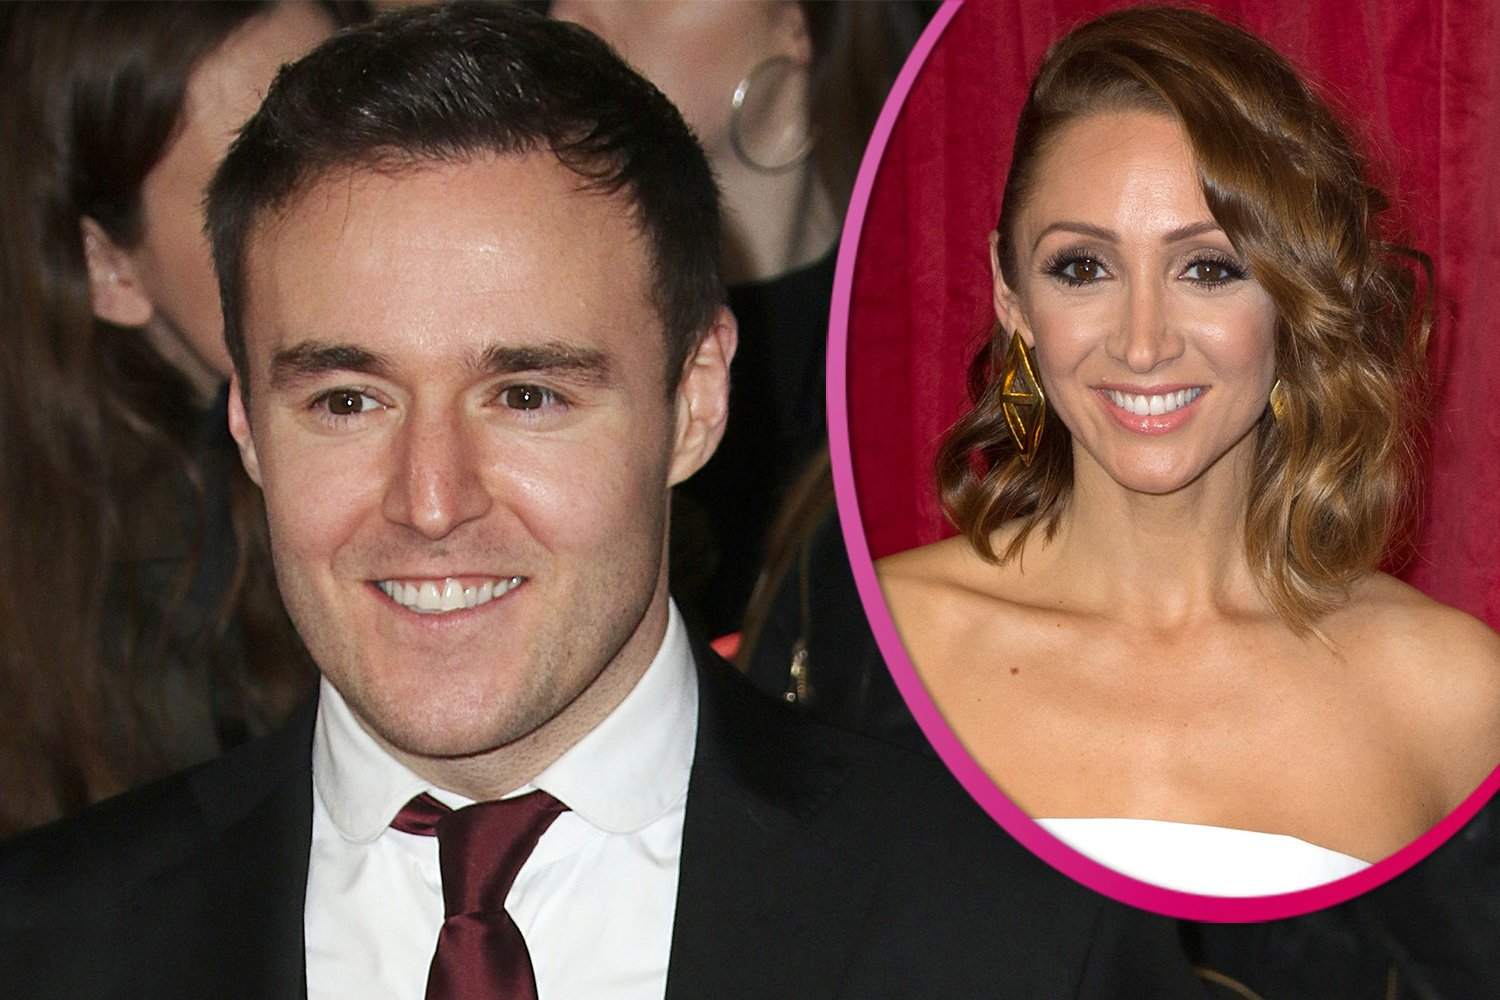 Corrie's Alan Halsall makes 'dig' at ex Lucy-Jo Hudson over her 'regret' comment